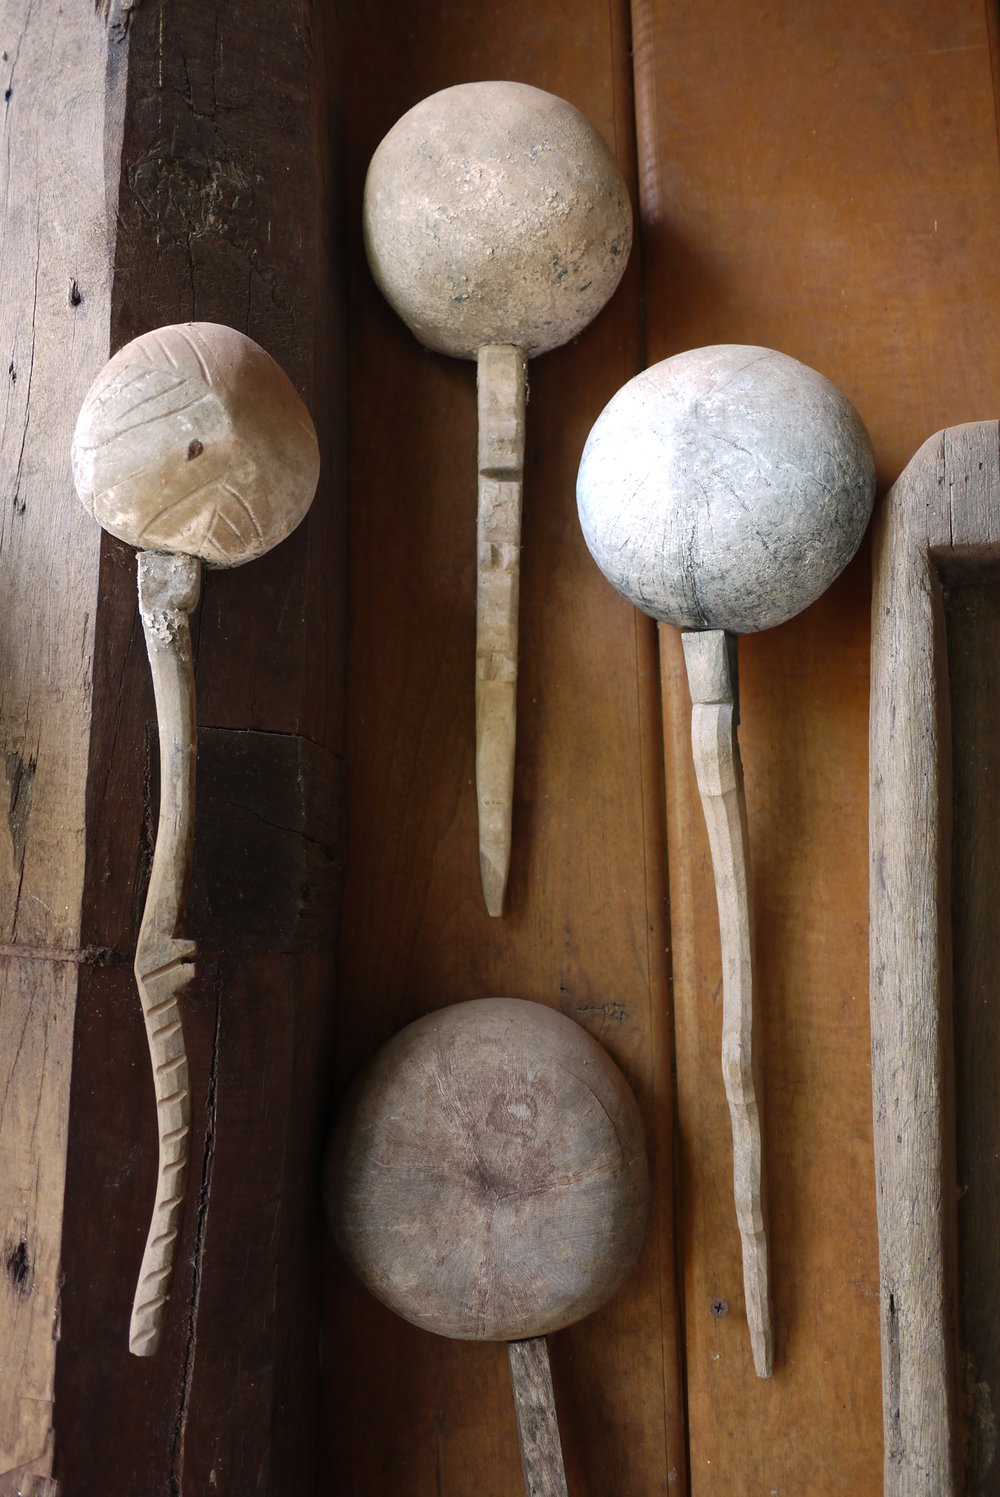 Ladles used for dyeing